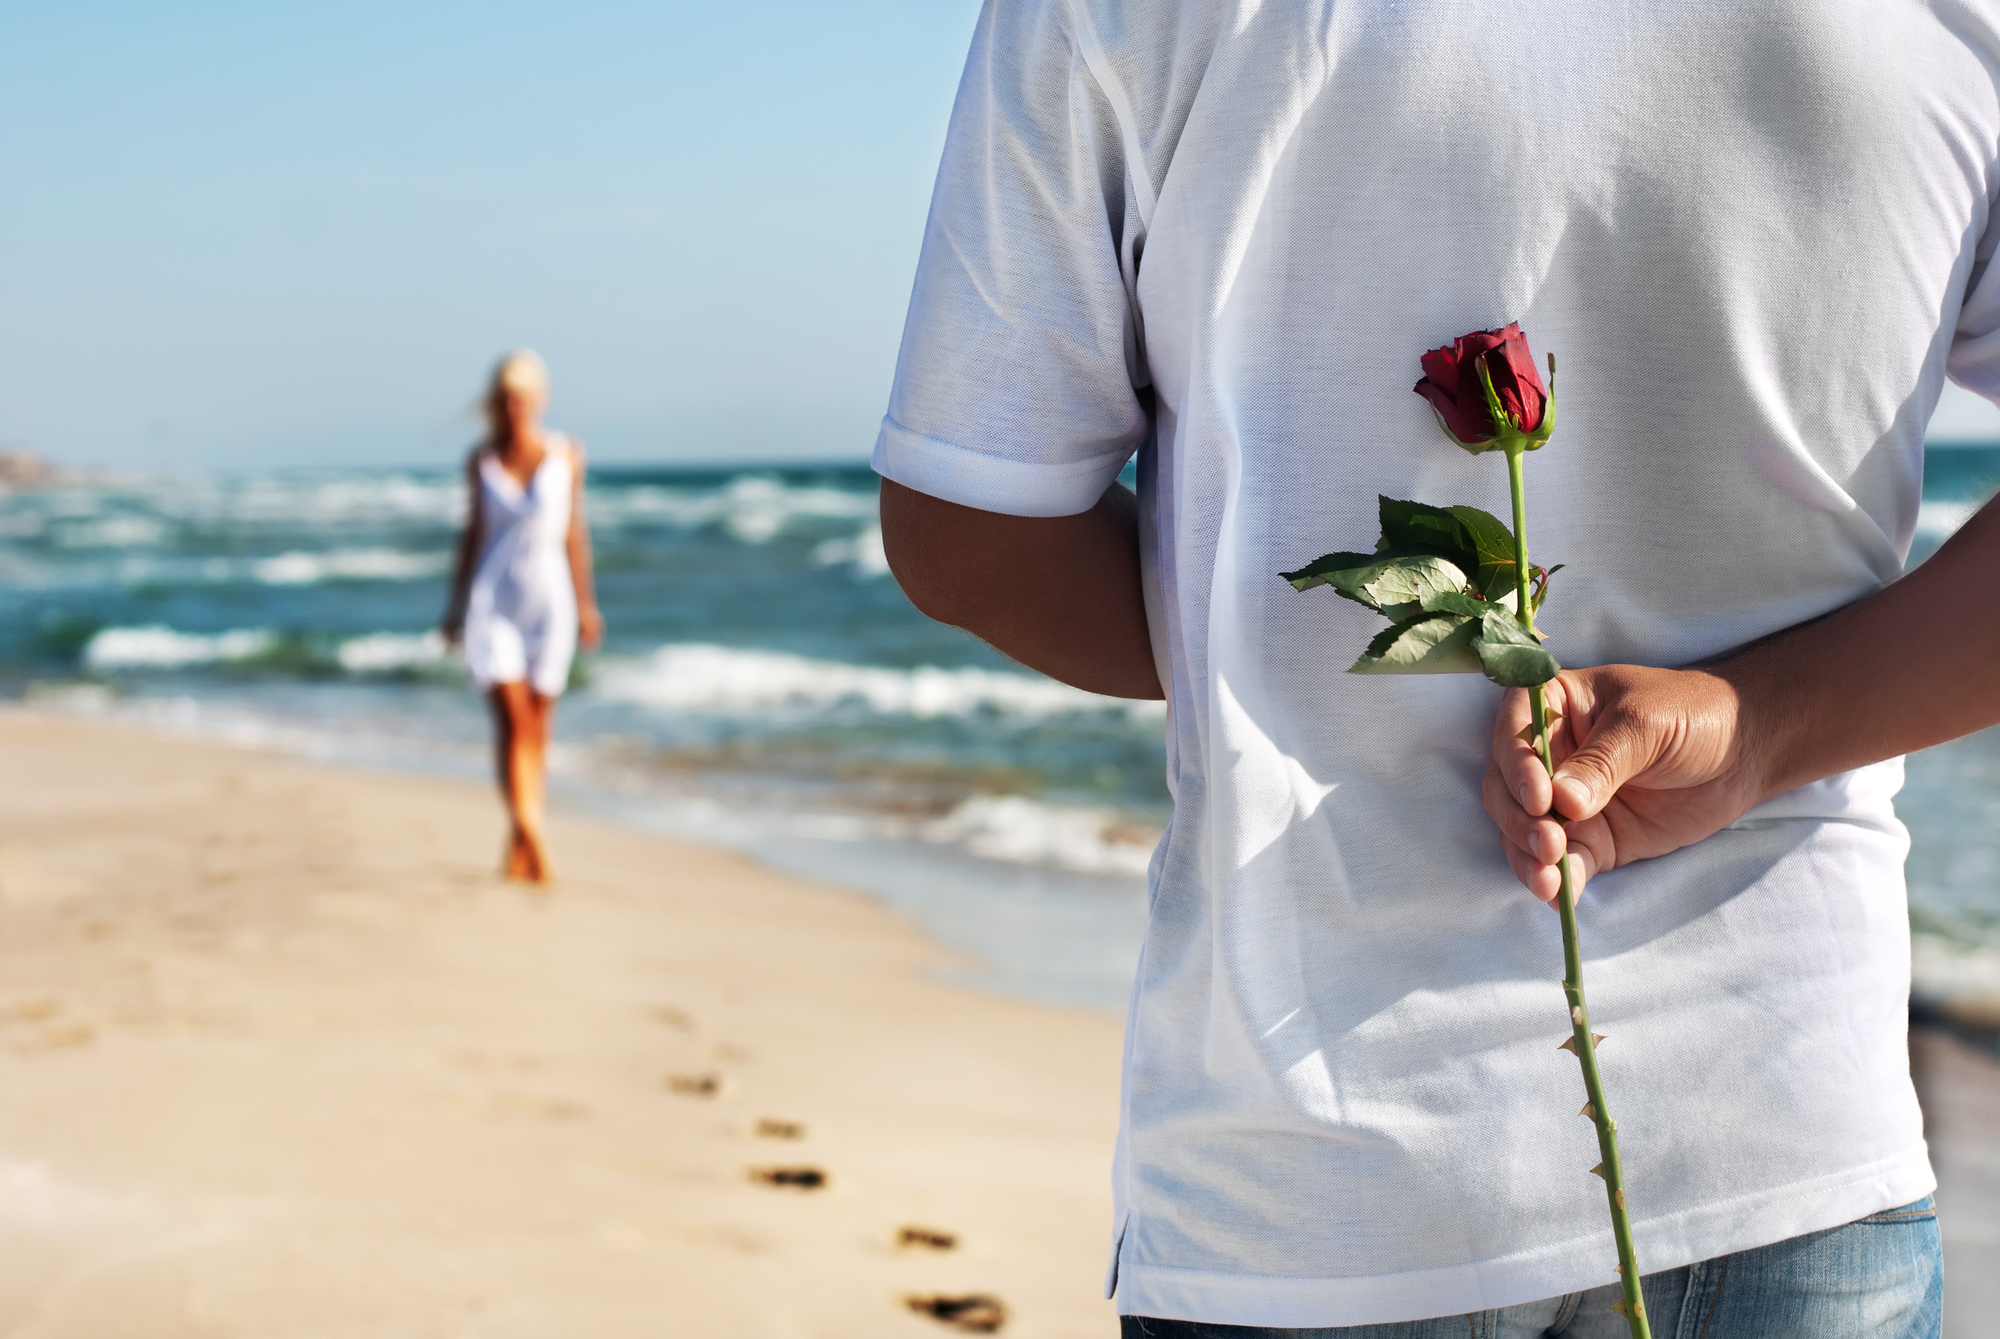 Woman approaching man with rose on beach